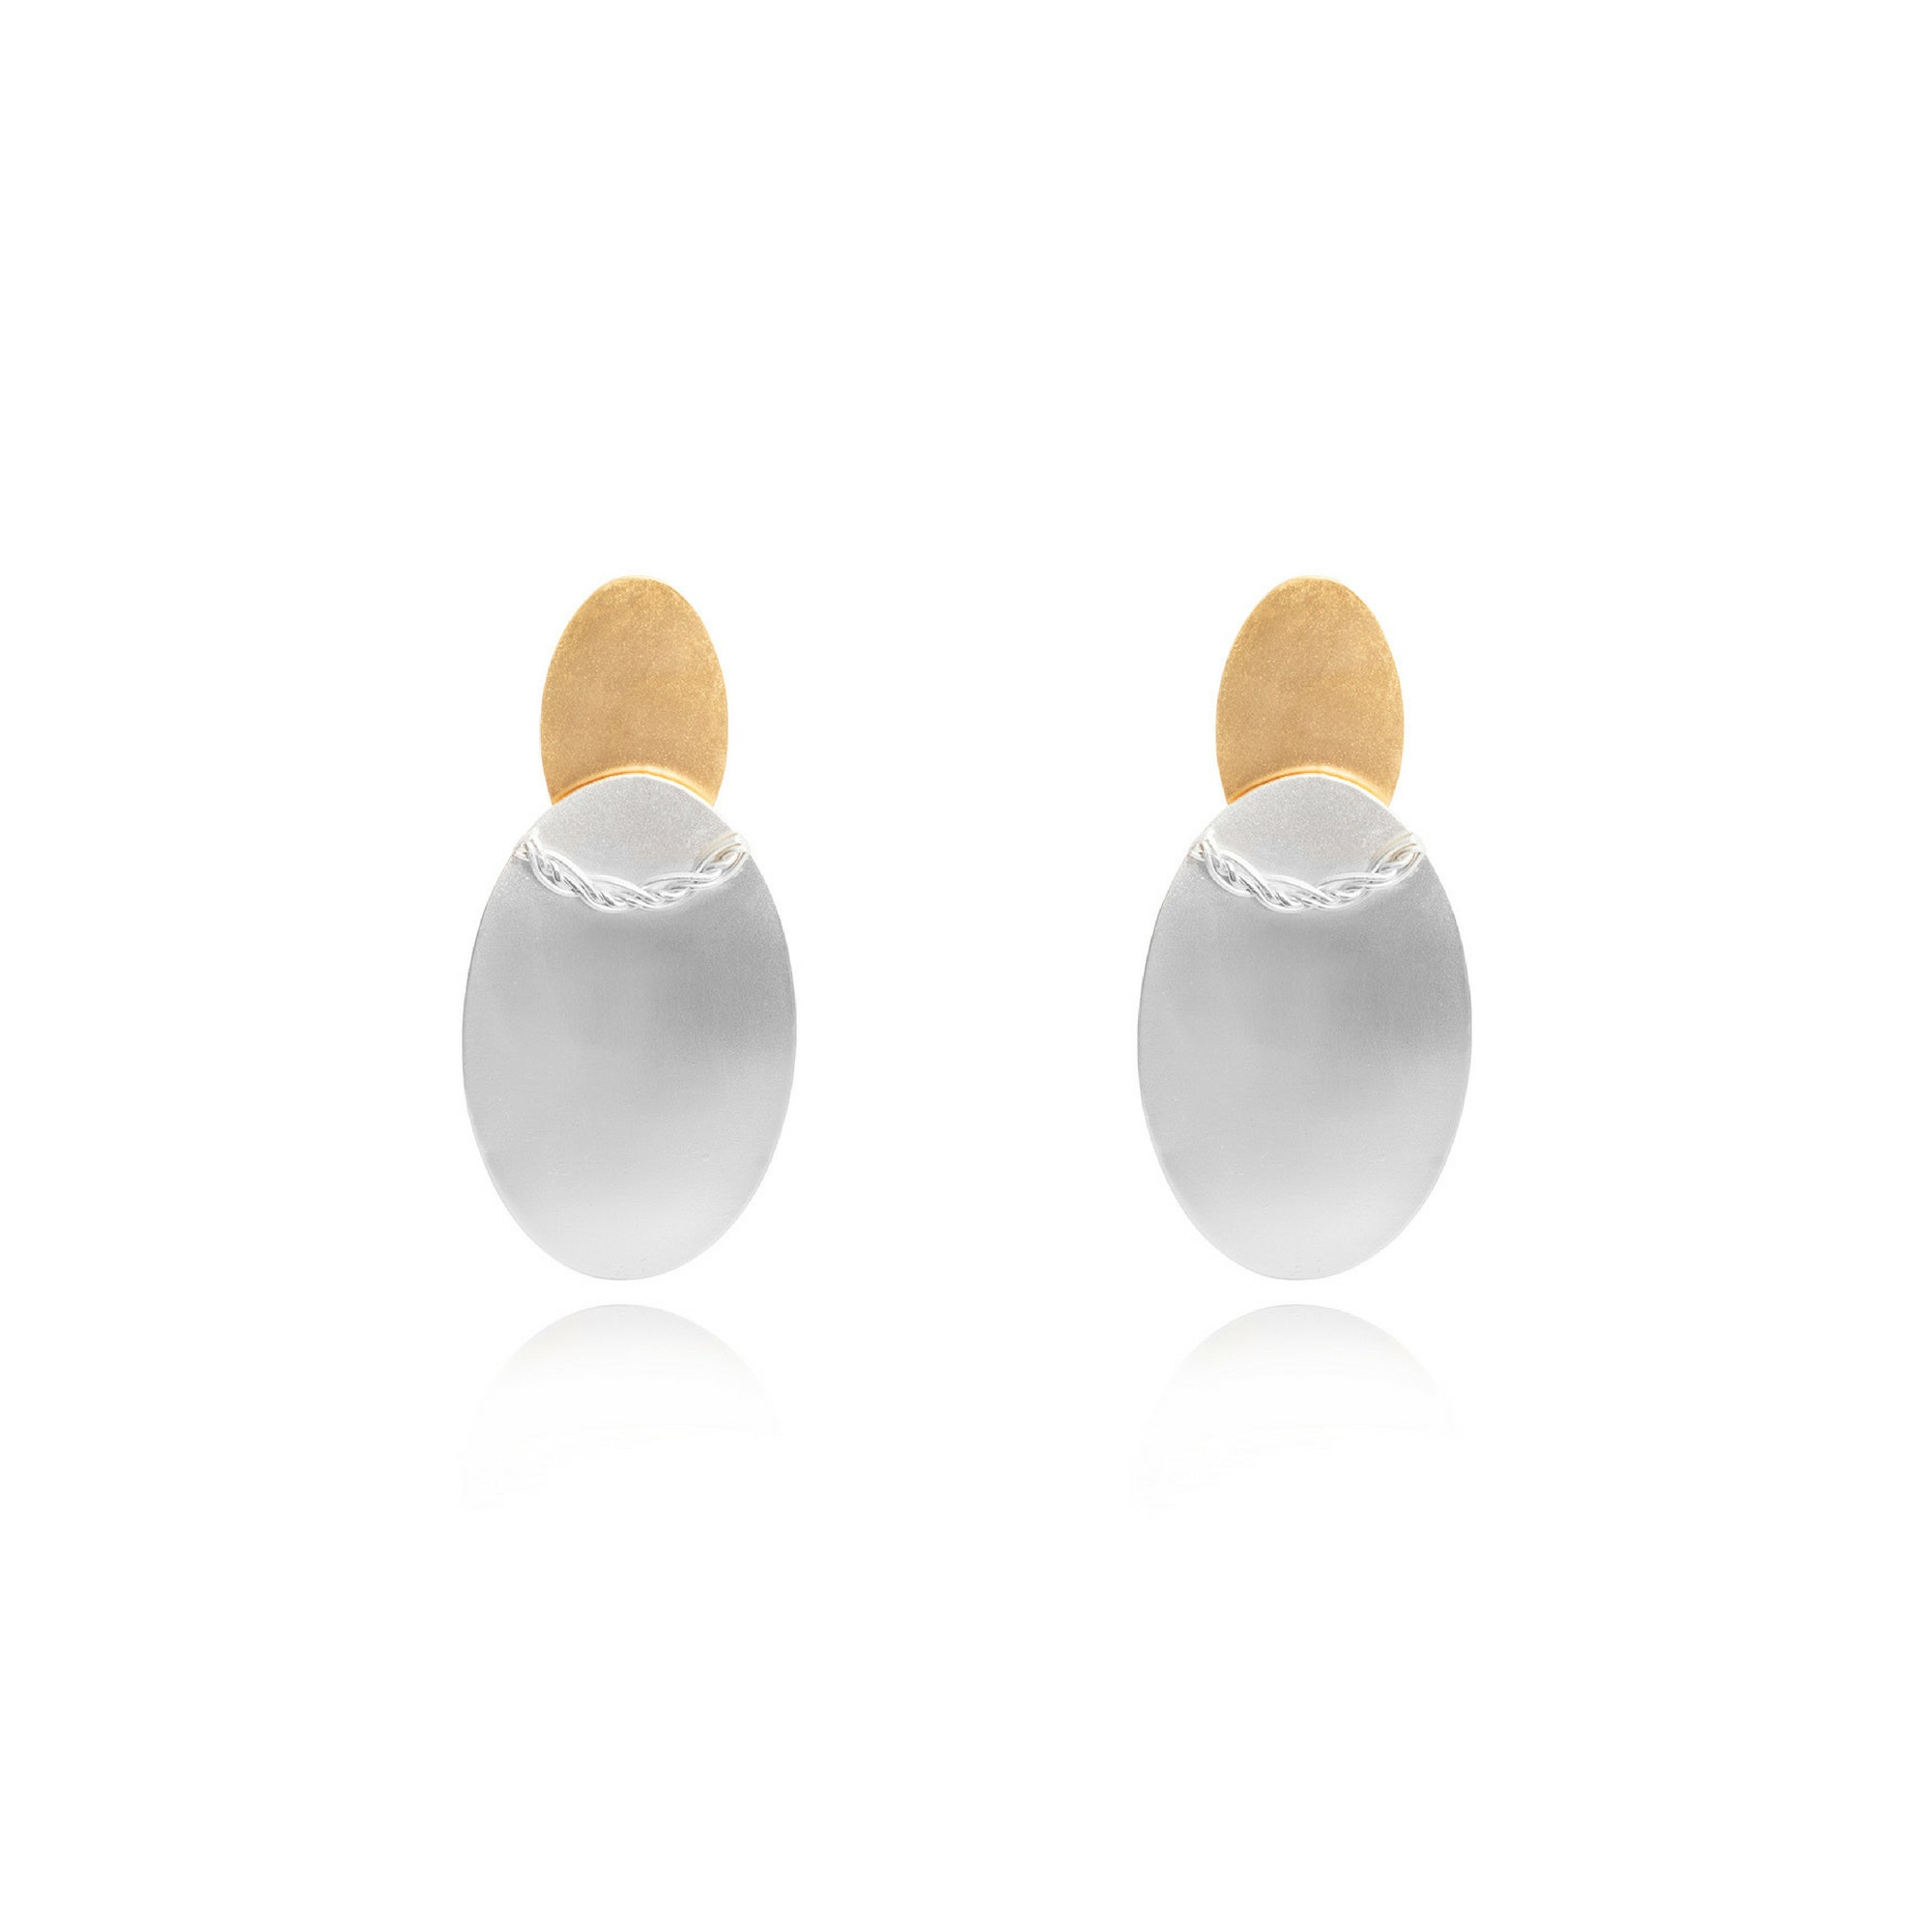 Liza Echeverry Jewelry Colombia Two Oval Earrings Mixed Gold